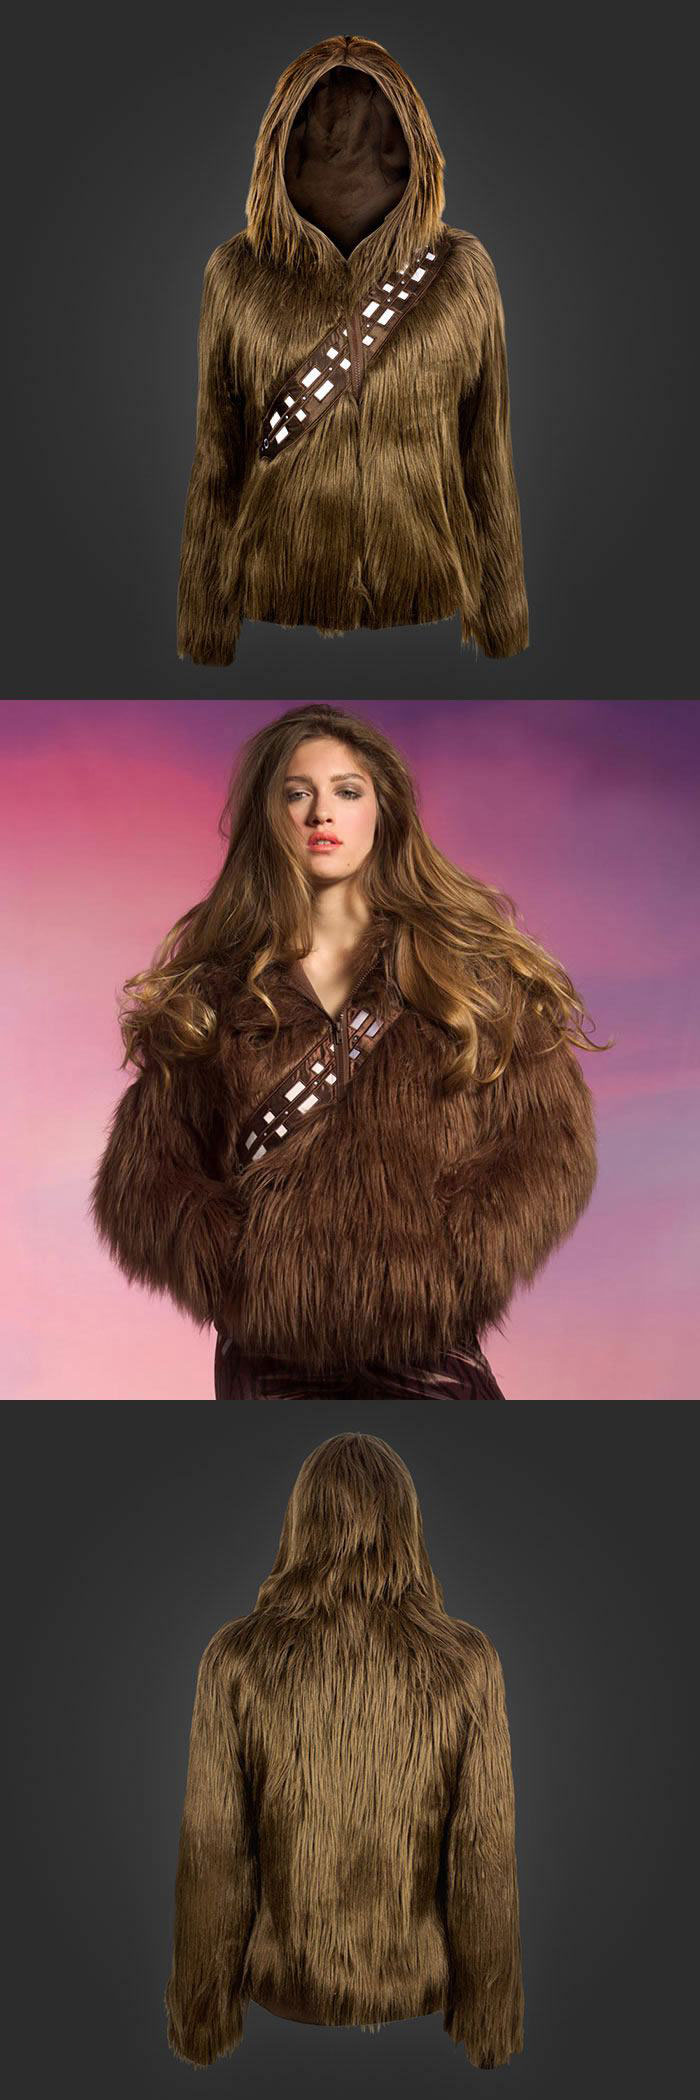 sport your finest fur in this star wars wookie jacket